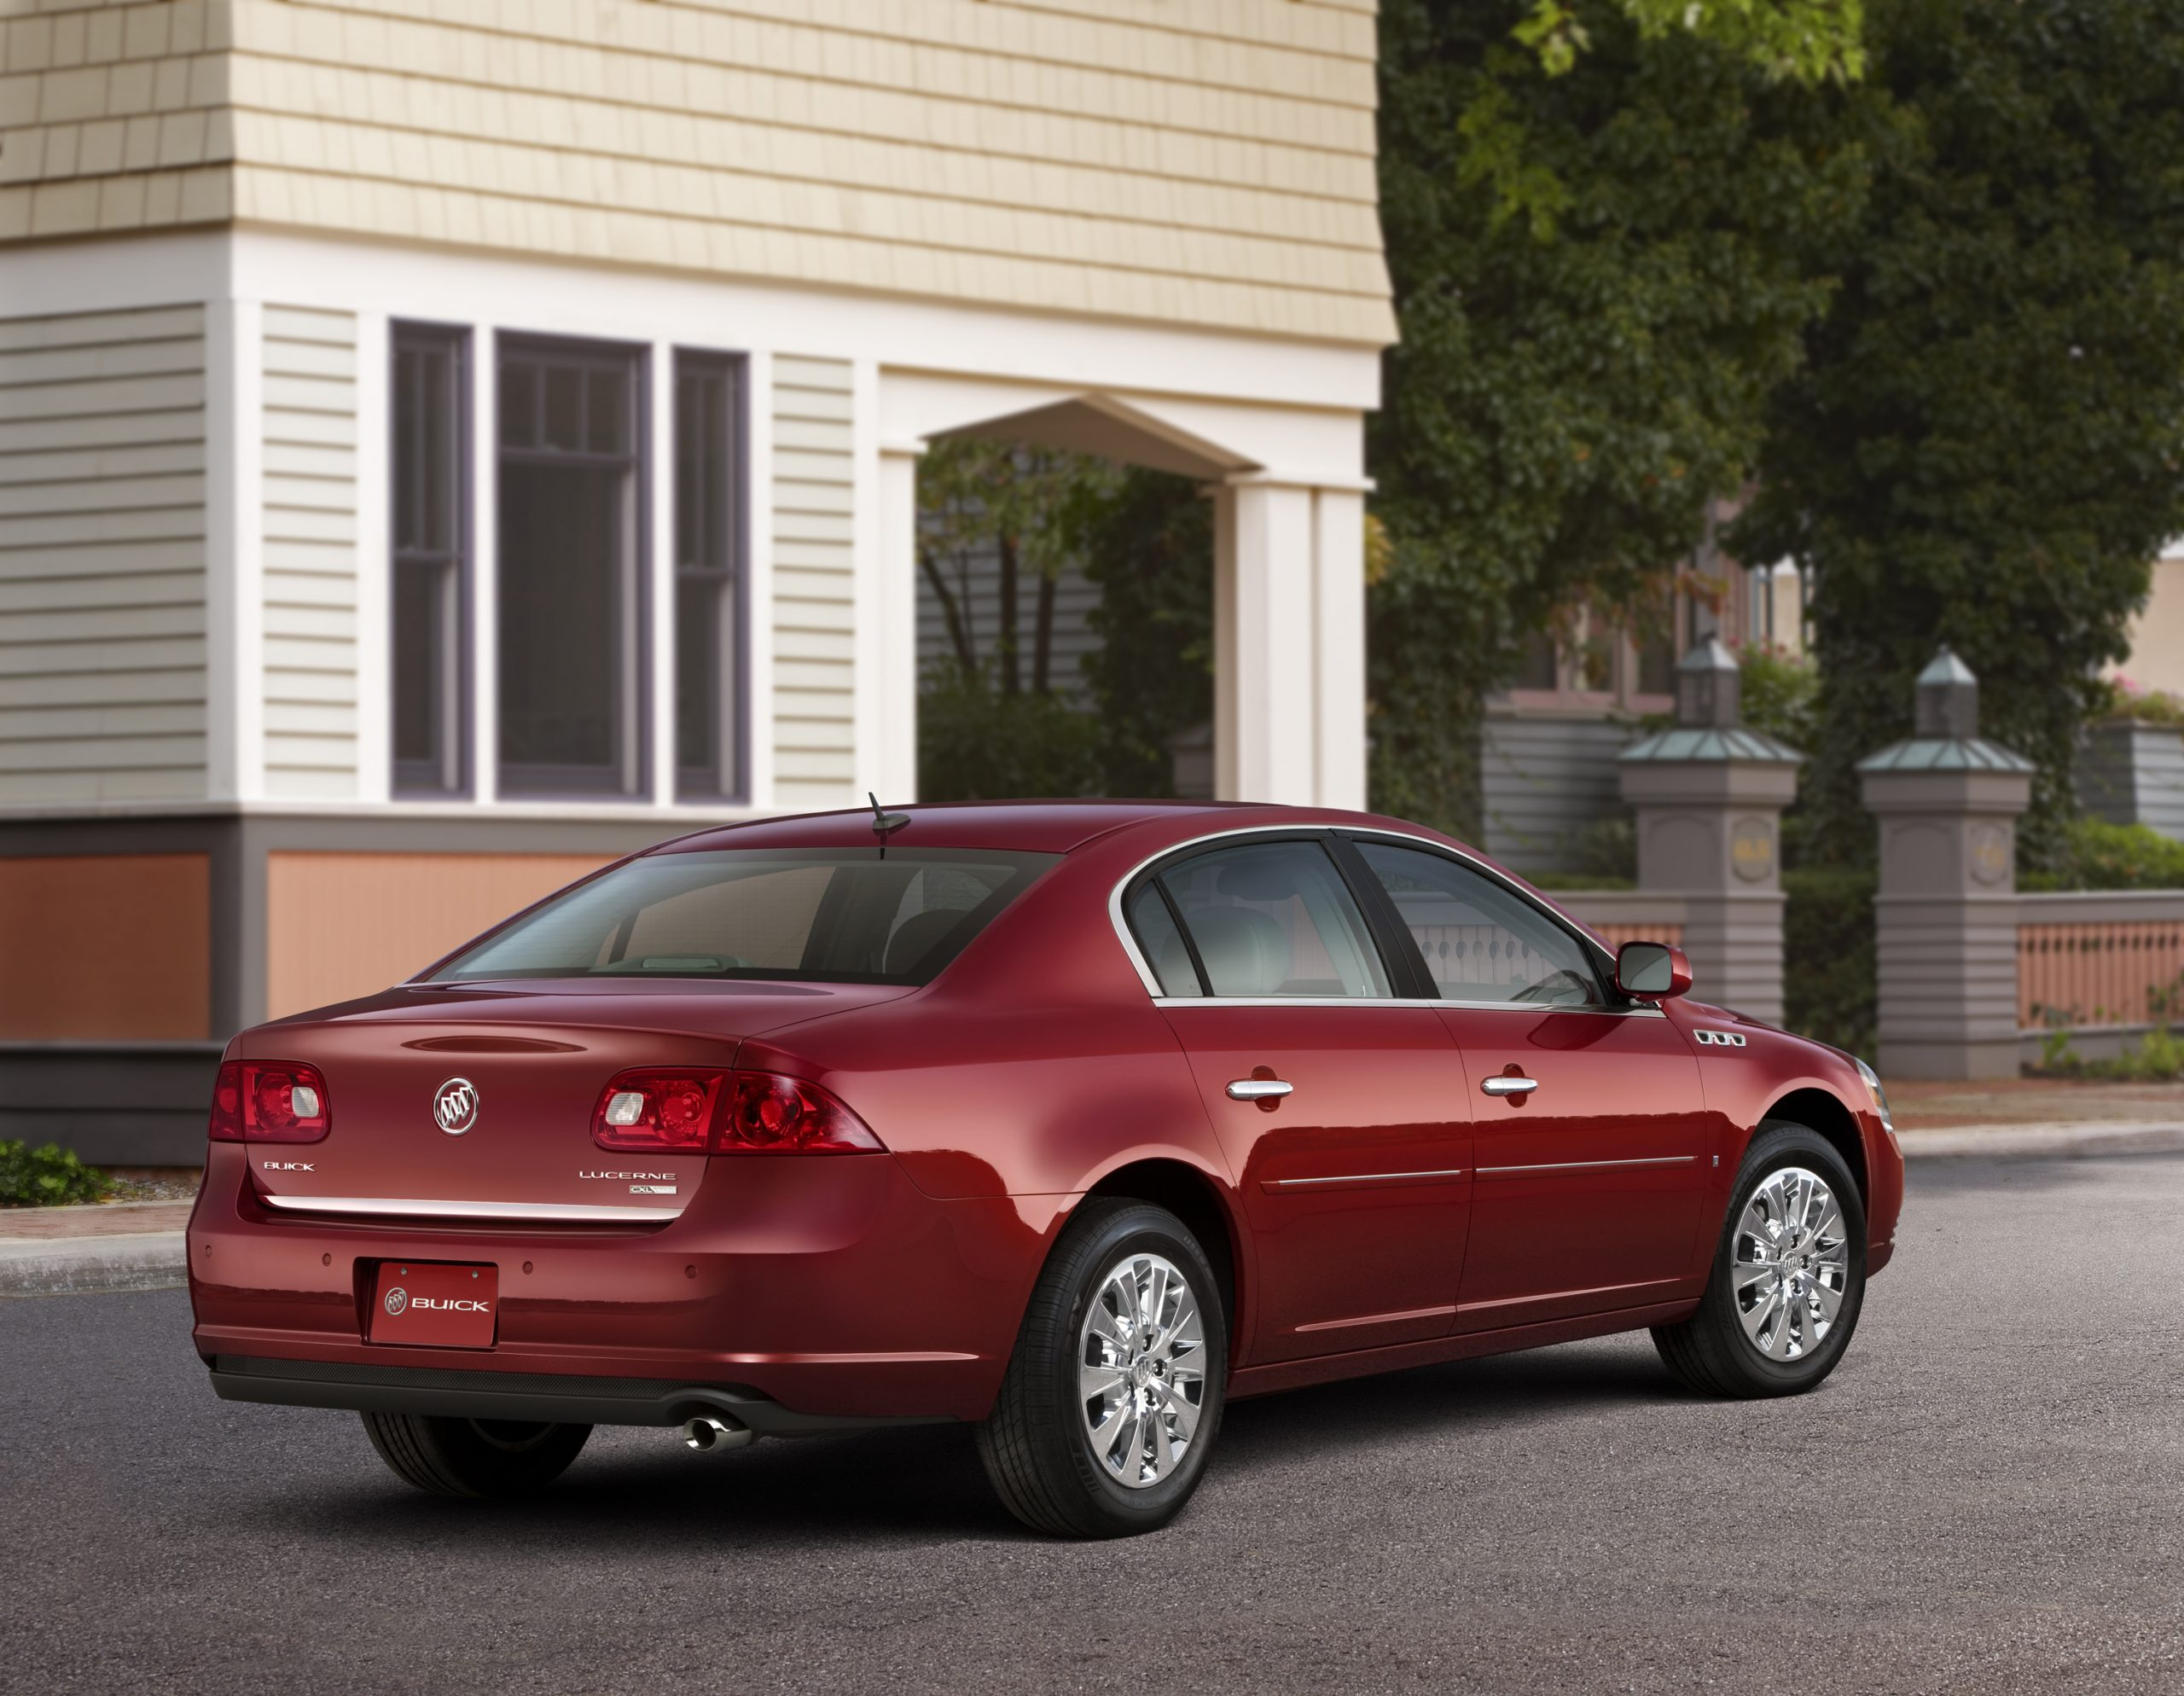 Are You Ready To Wave Goodbye To The Buick Lucerne? | Gm 2022 Buick Lucerne Models, Manual, Issues